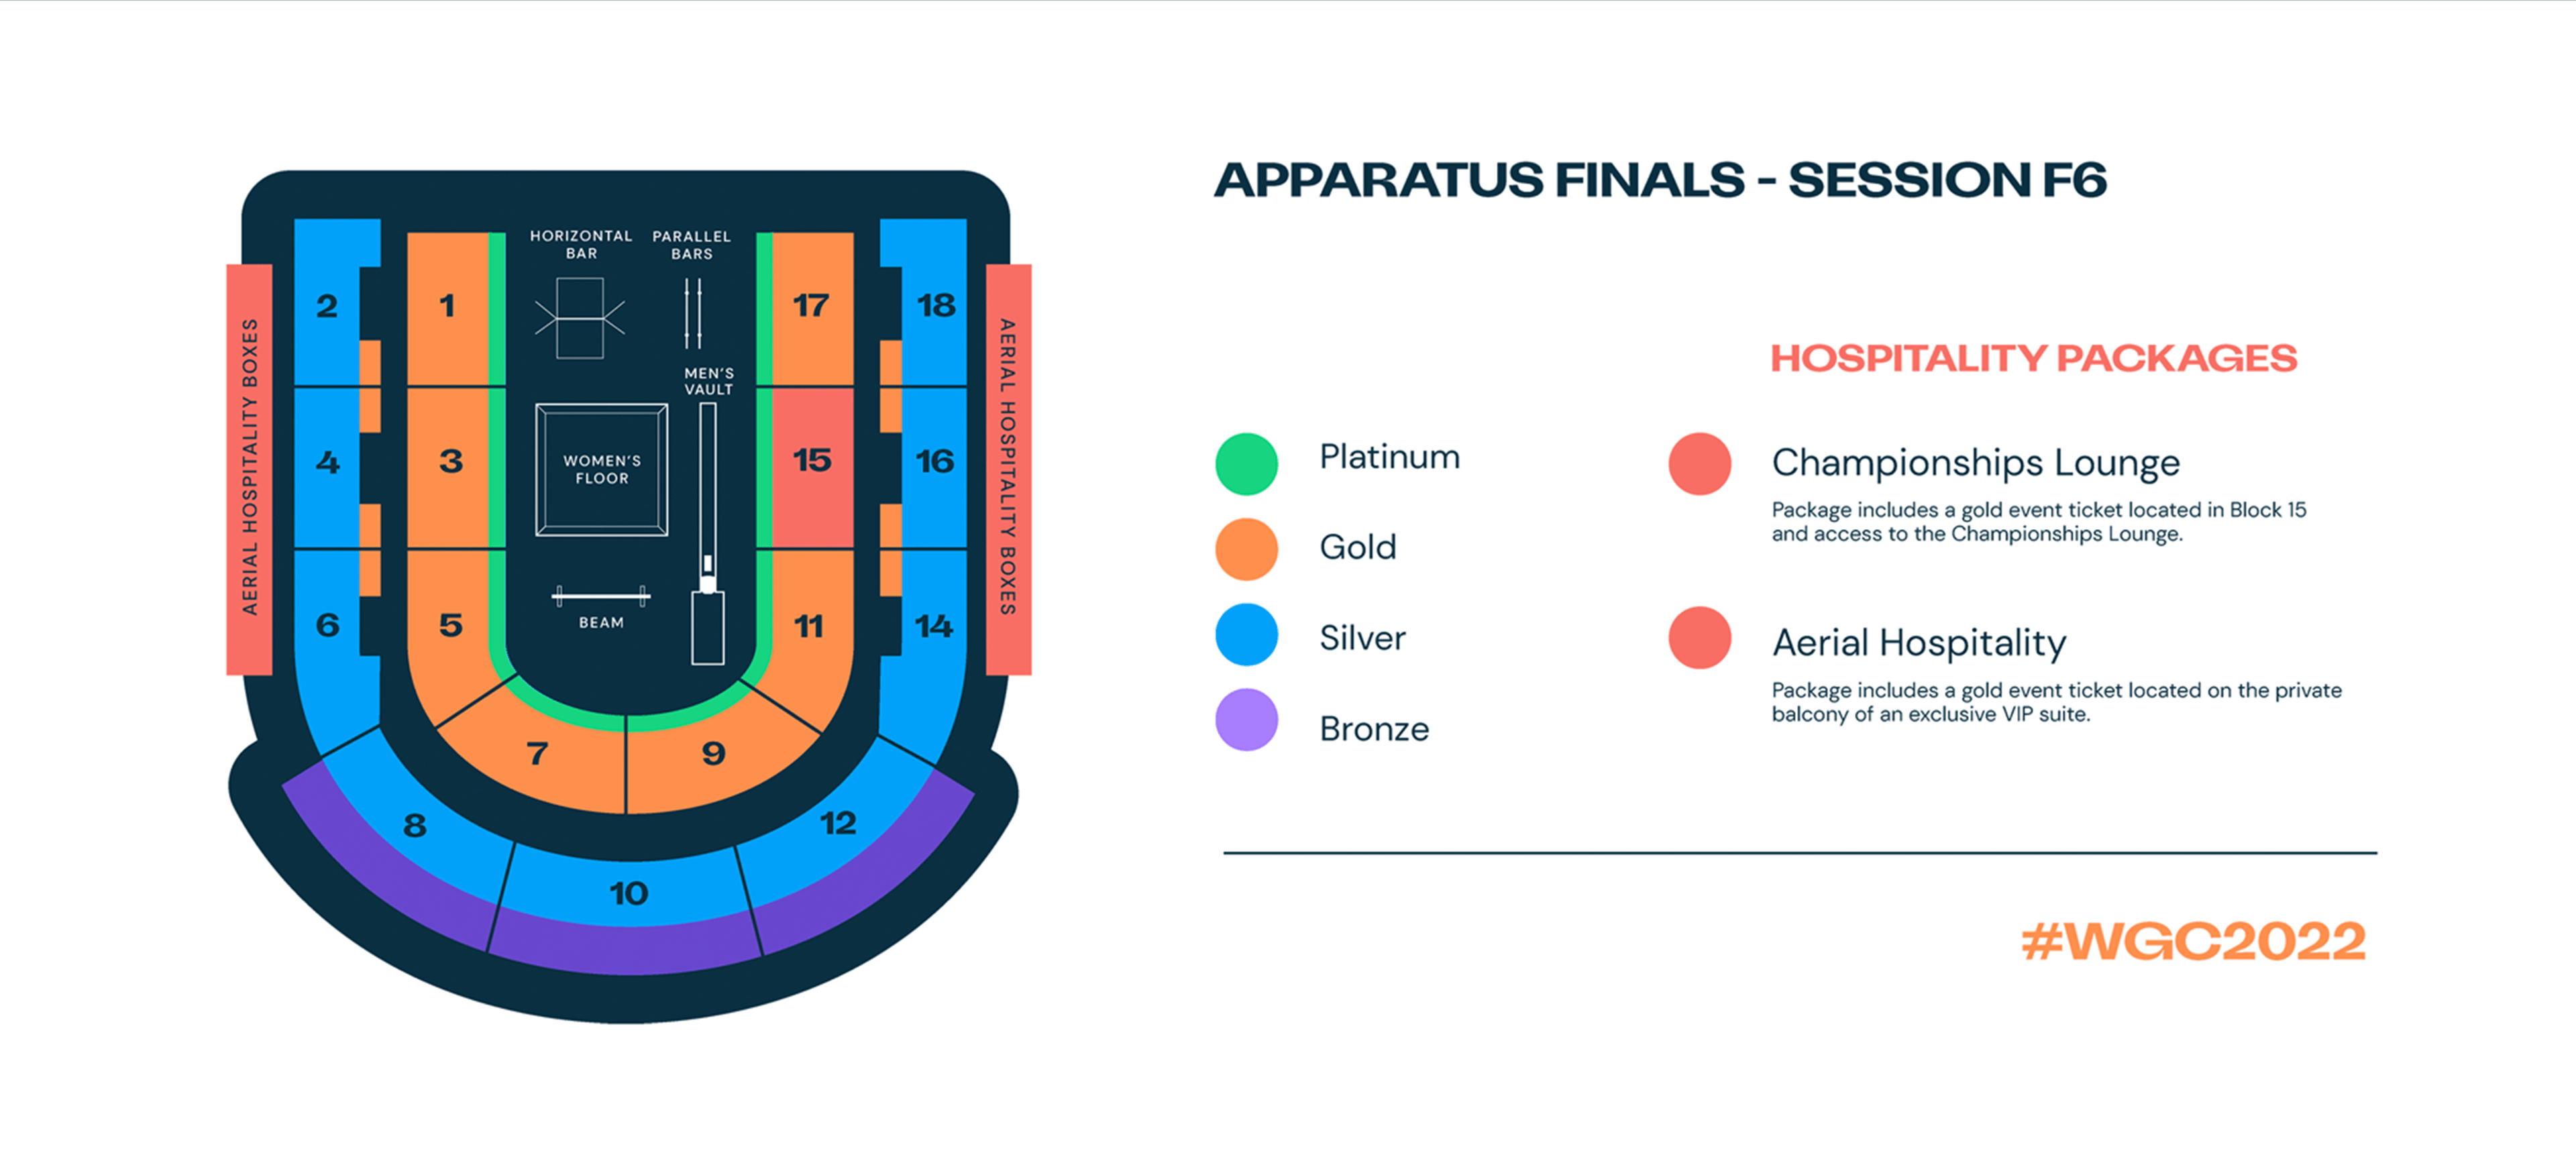 Seat map for Apparatus Finals - Session F6